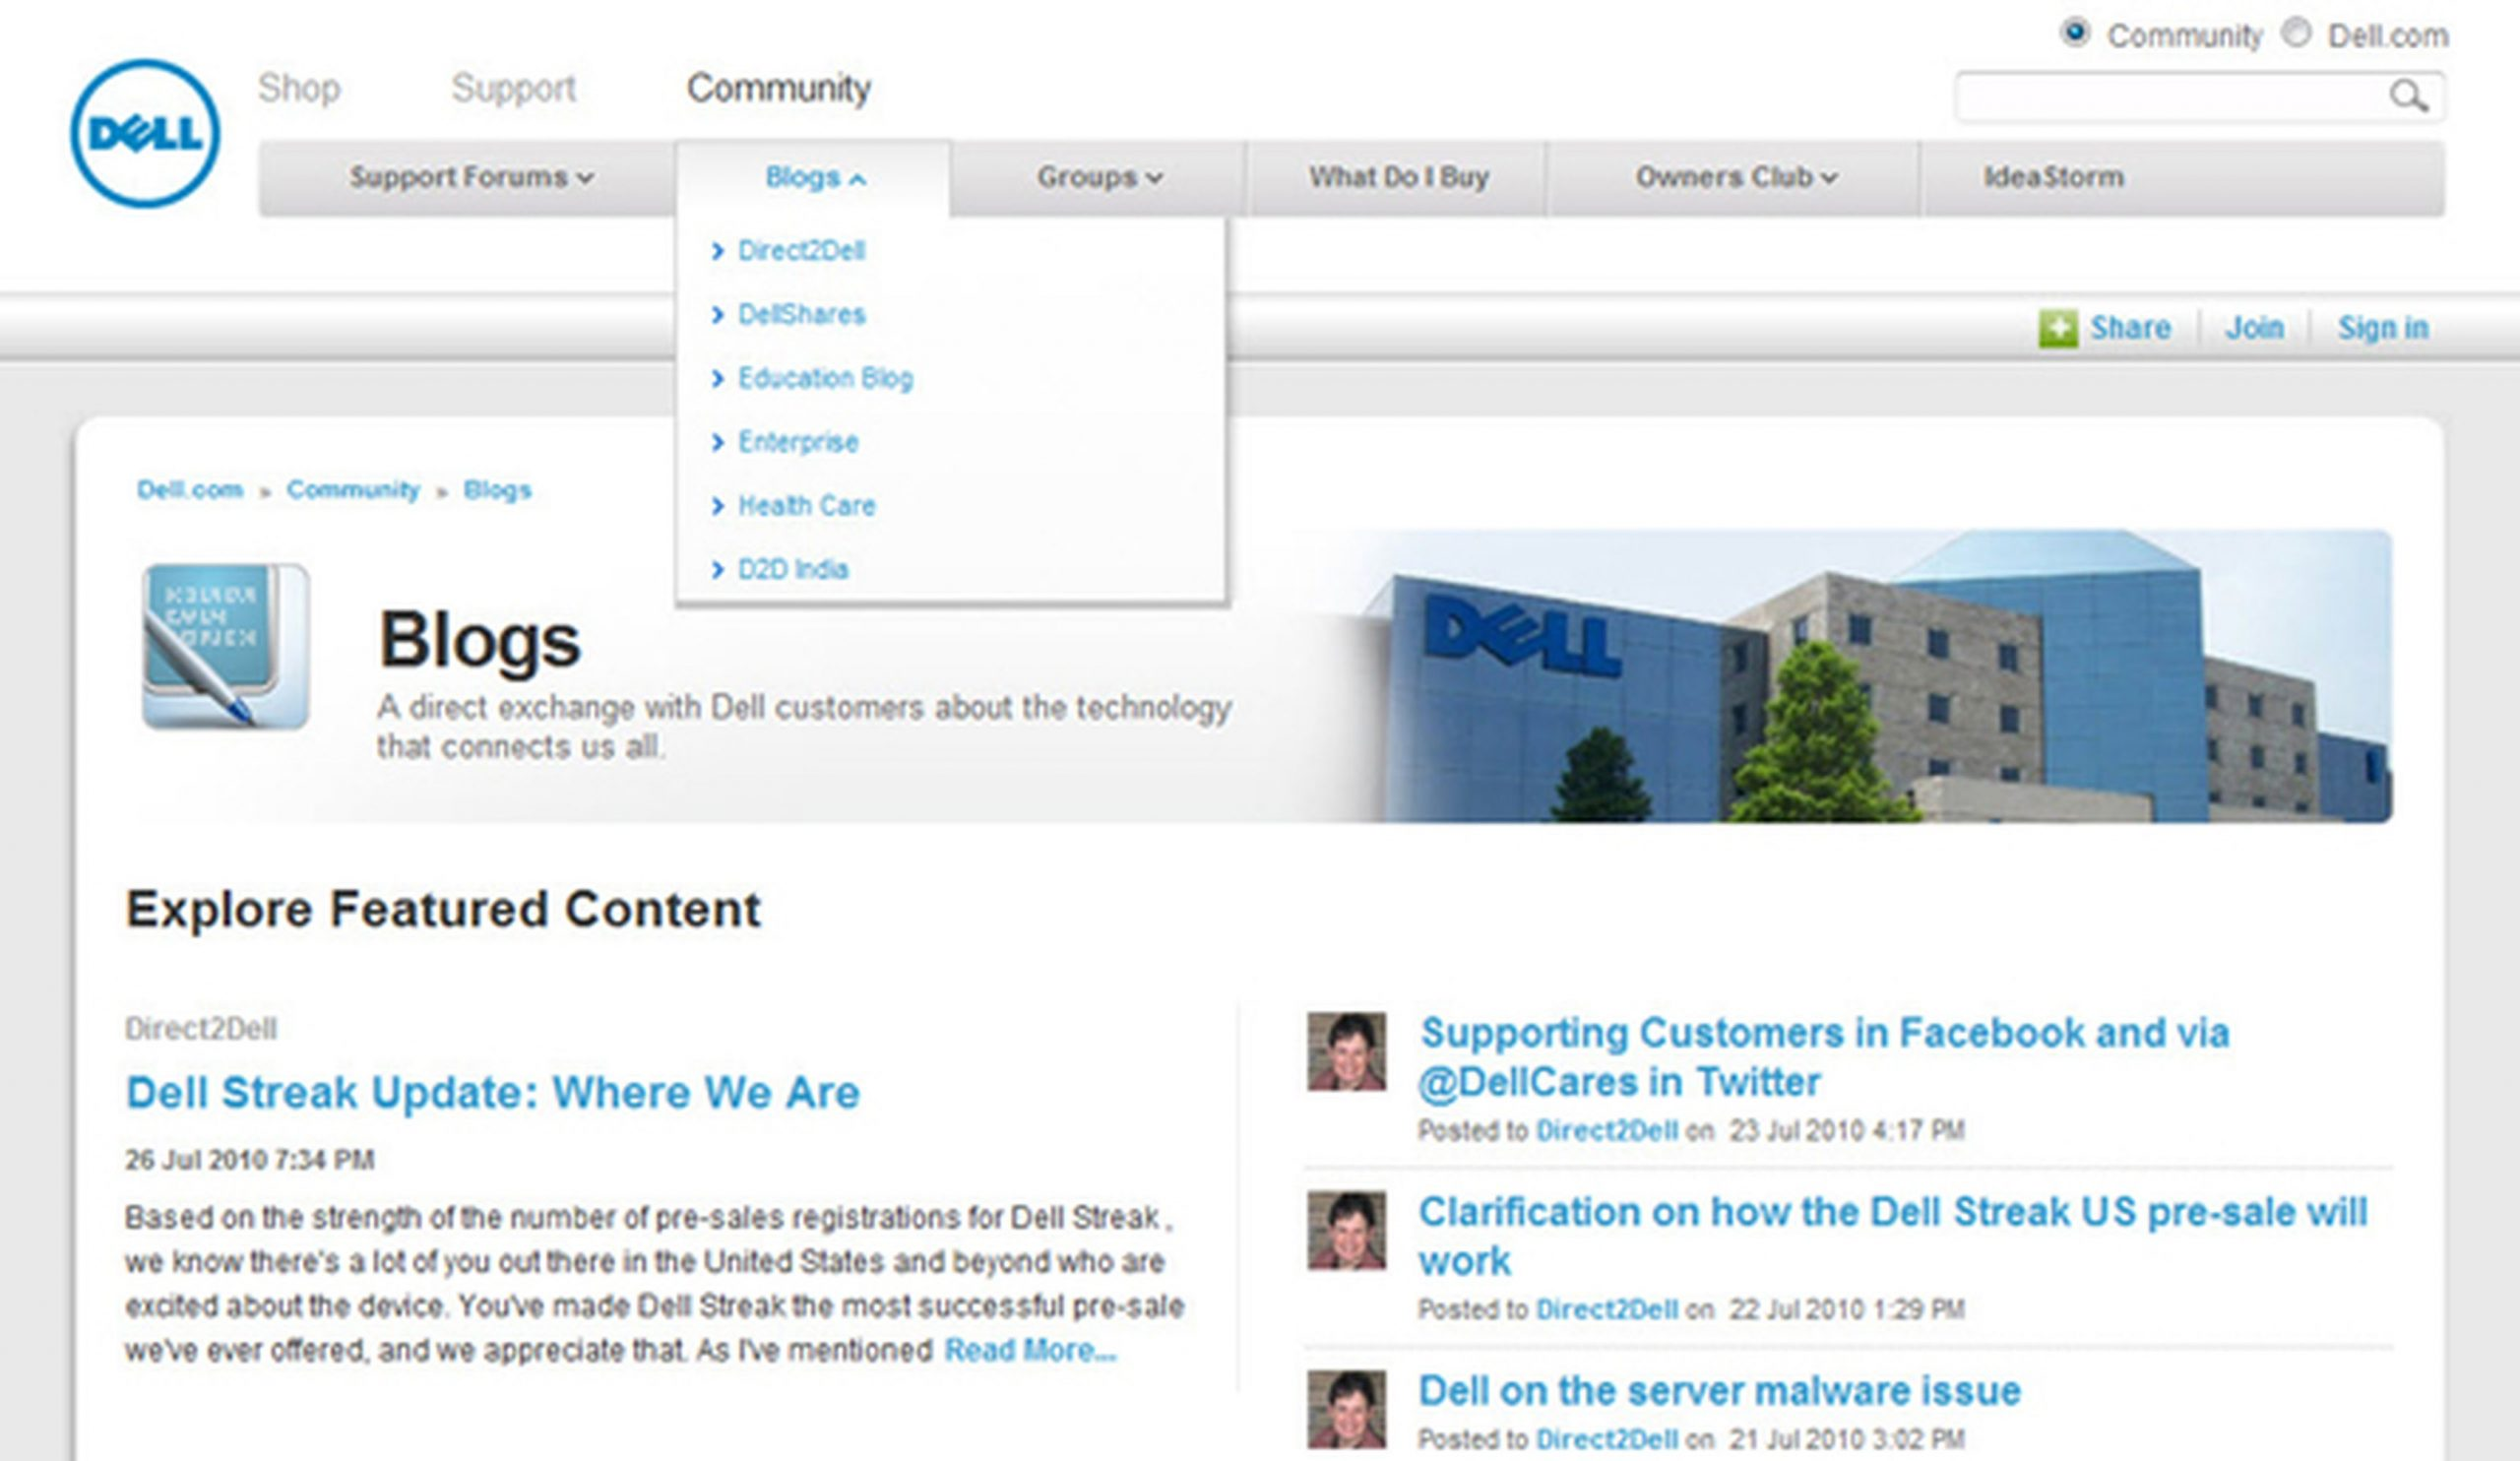 Dell: Use a Landing Page to Organize Multiple Blogs